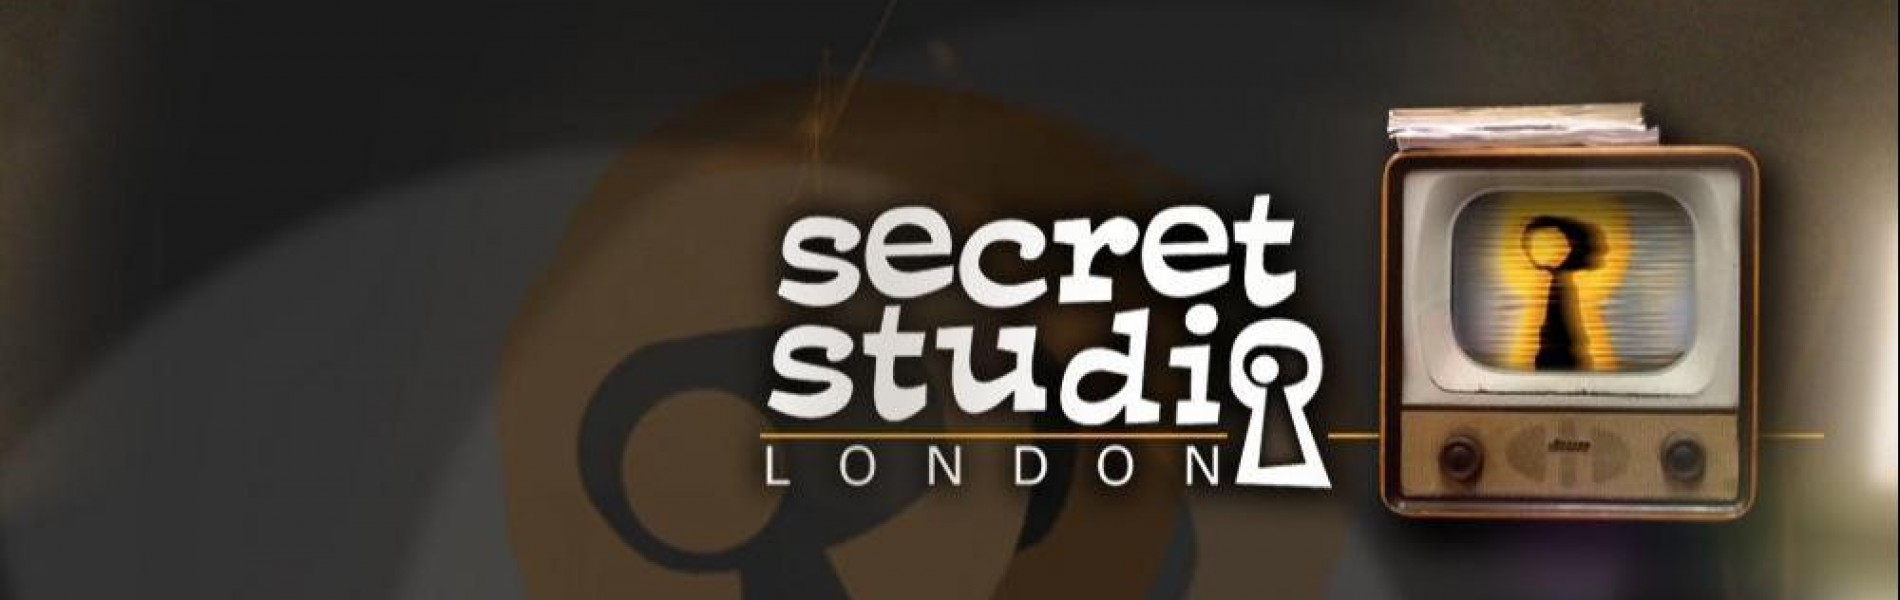 Secret studio escape room in london united kingdom nowescape - Secret escapes london office ...